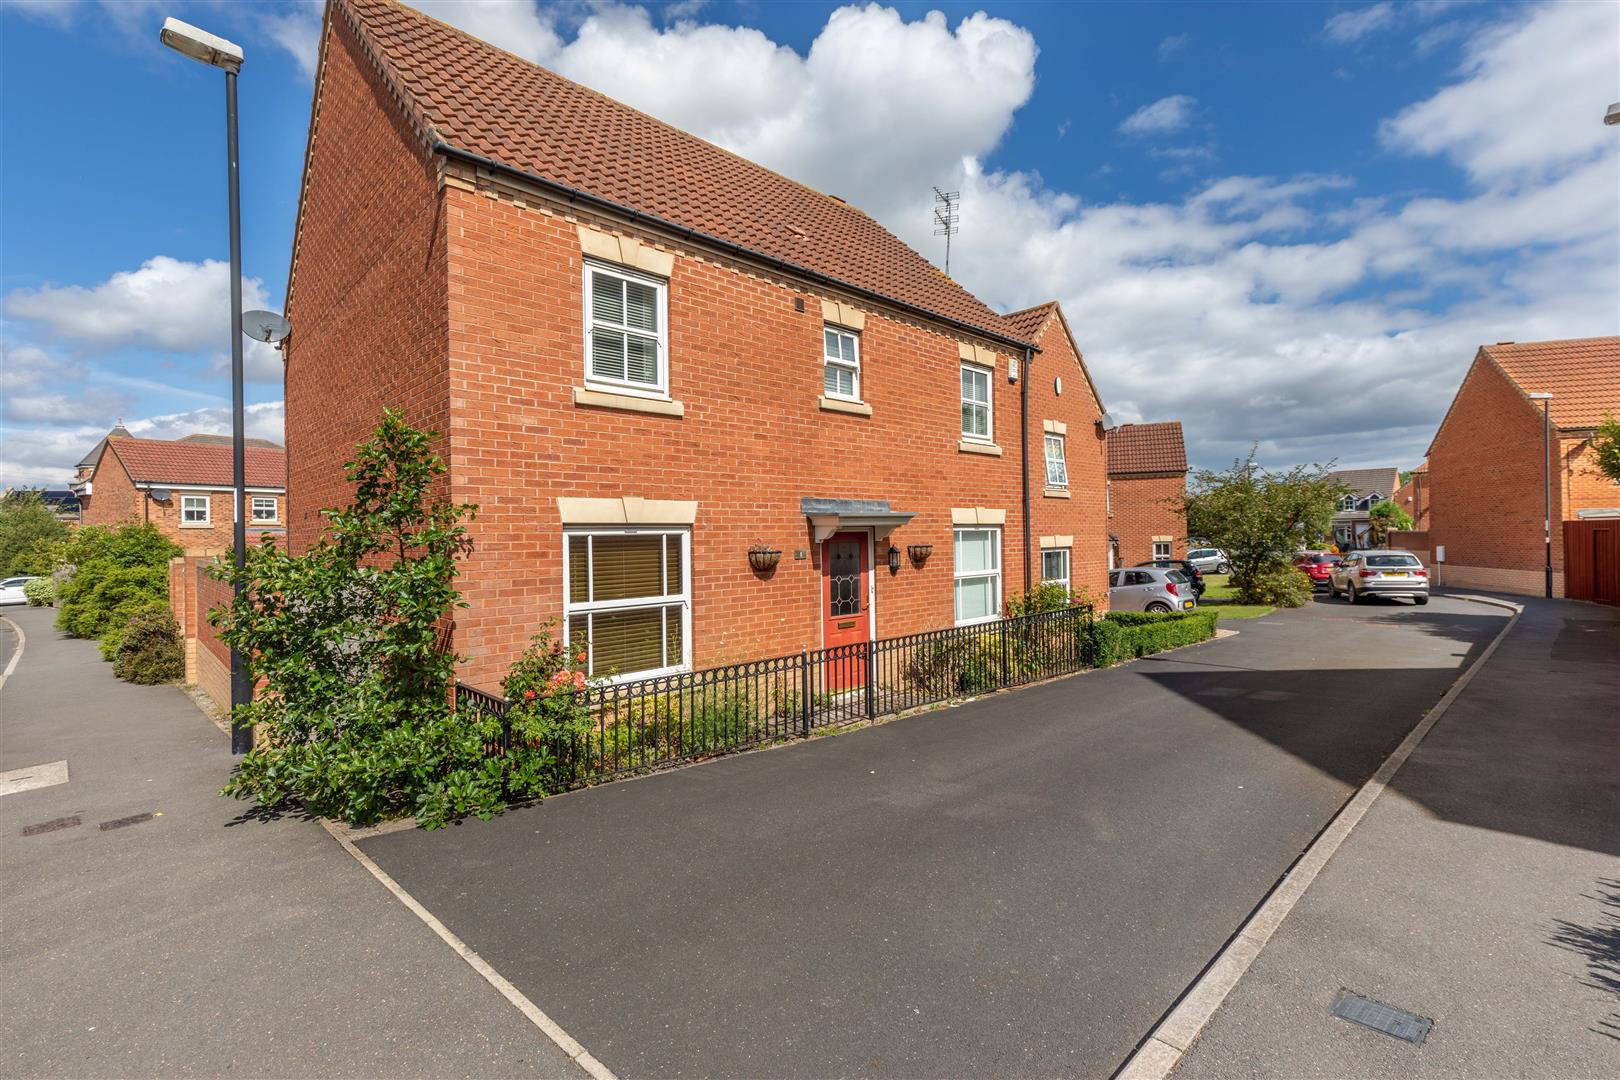 4 bed detached house for sale in Newcastle Upon Tyne, NE27 0RN  - Property Image 1